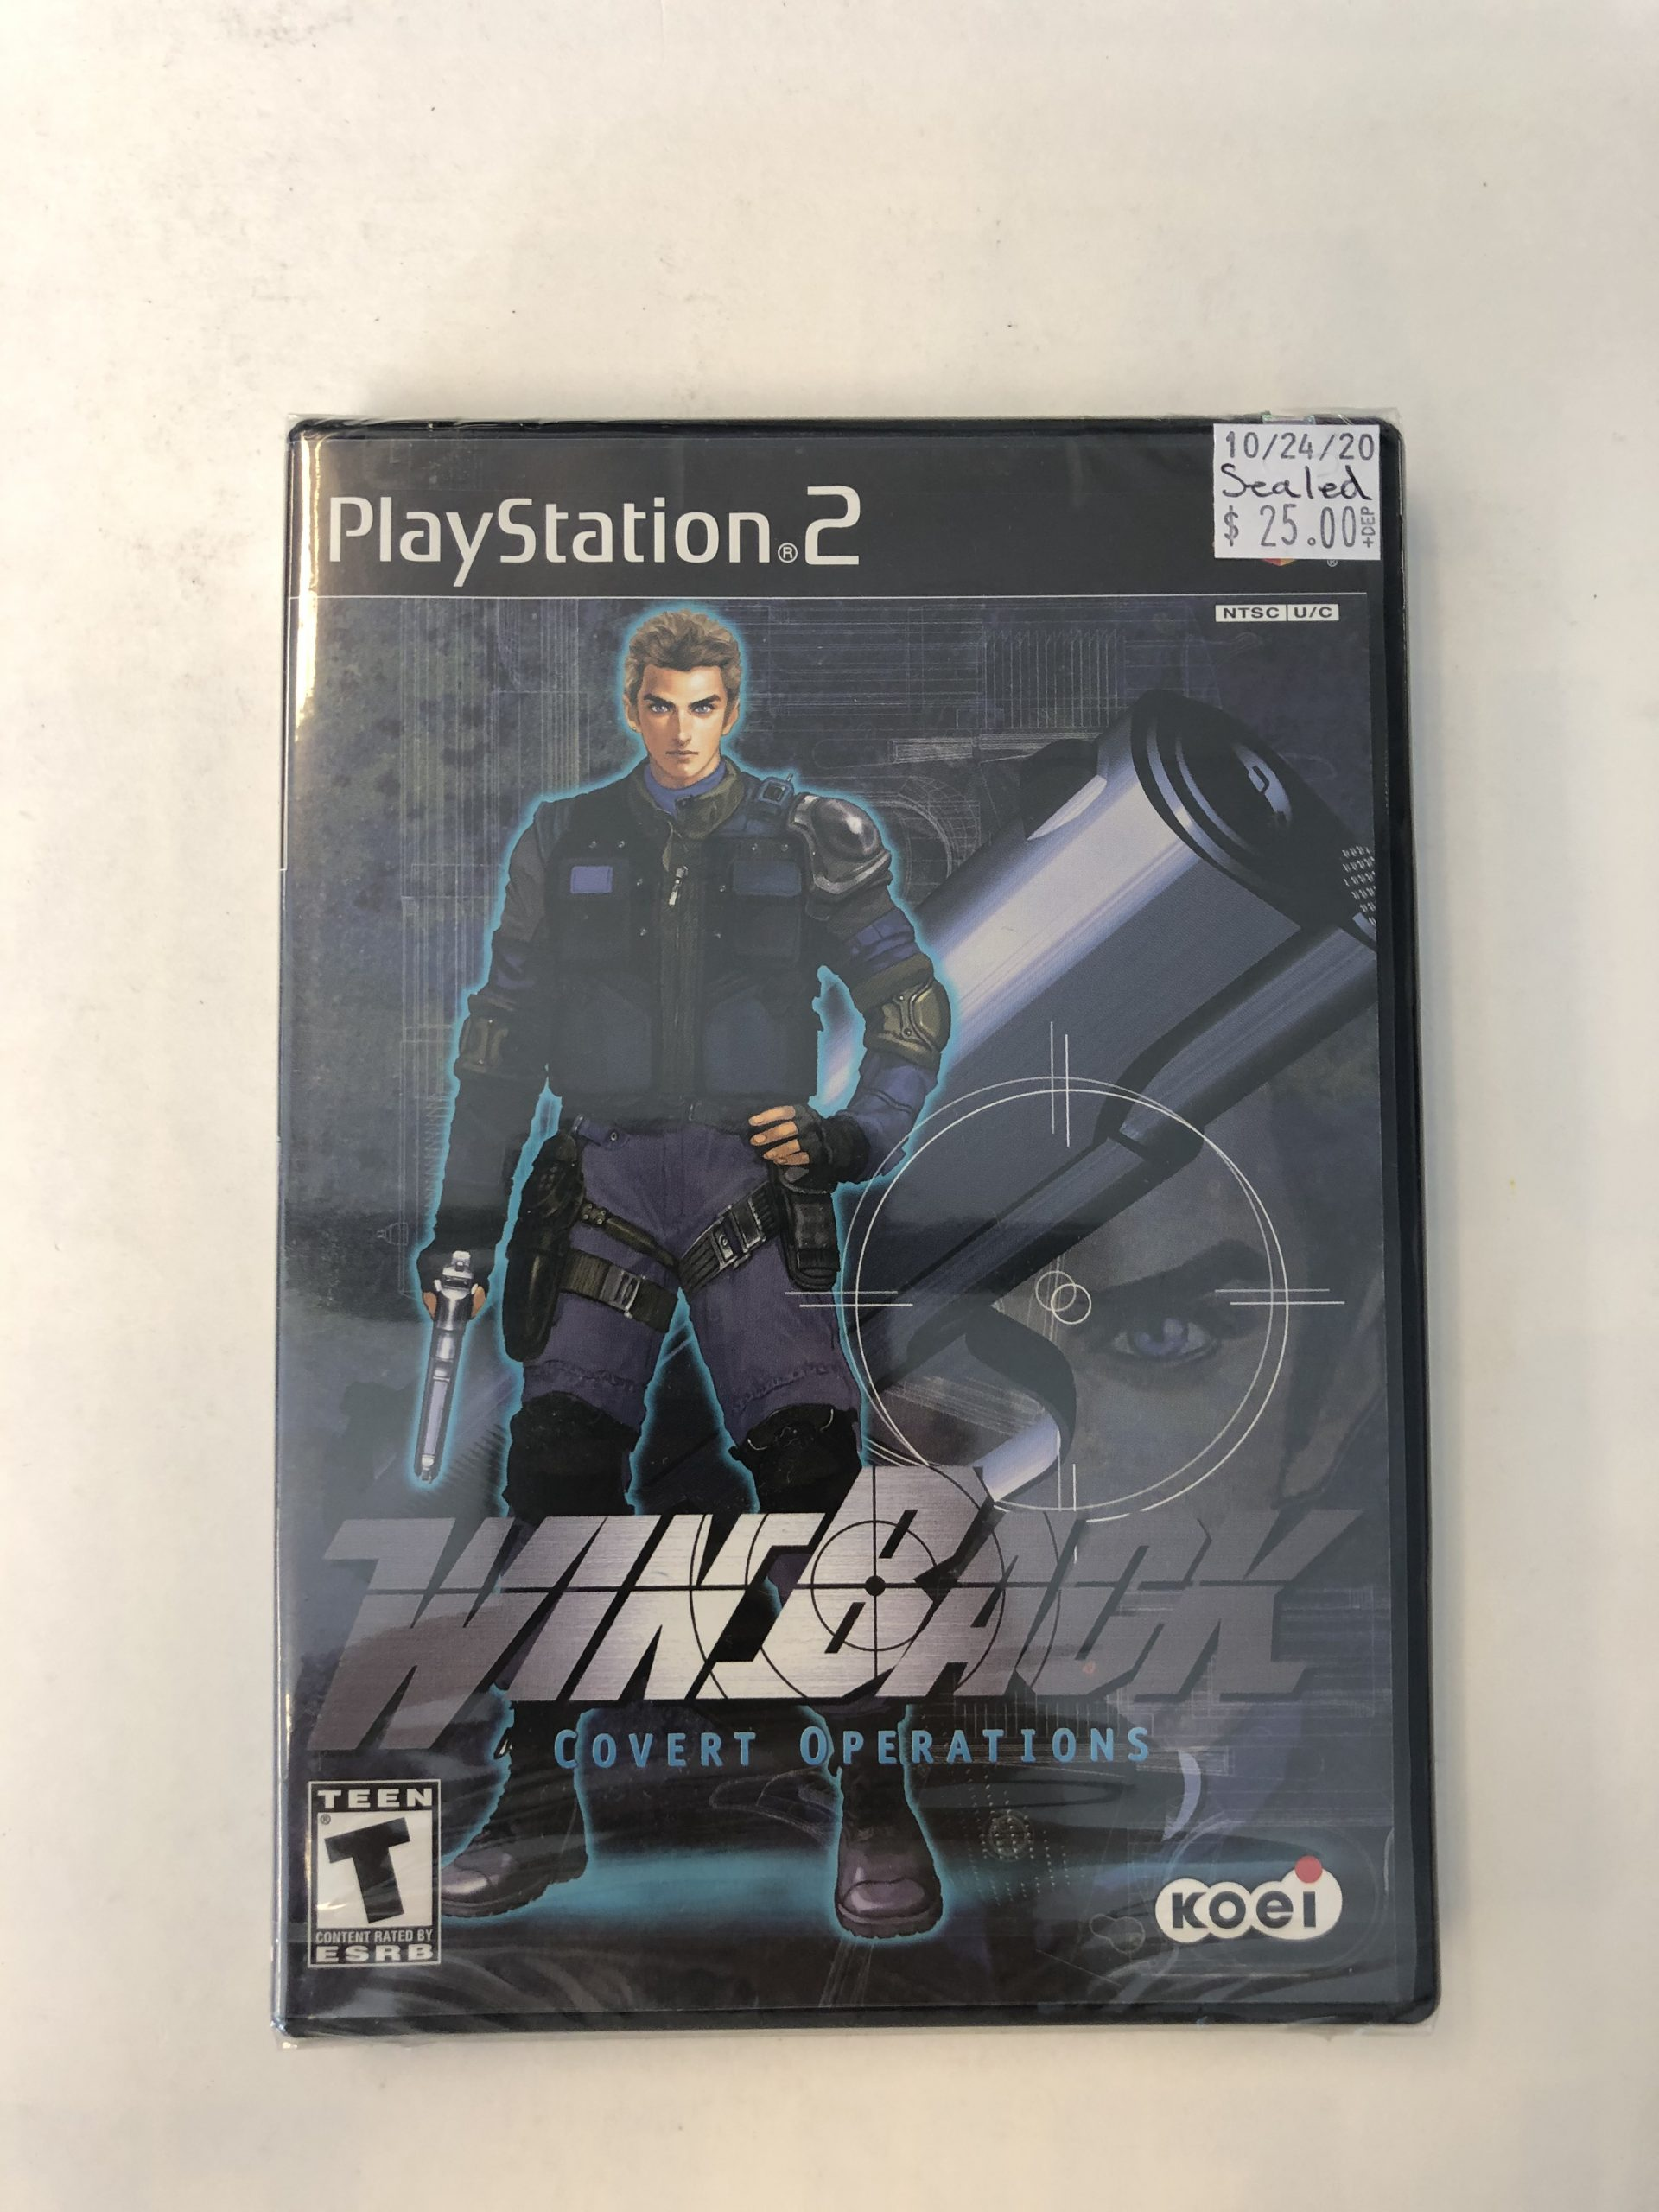 SEALED Win Back Covert Operations PS2